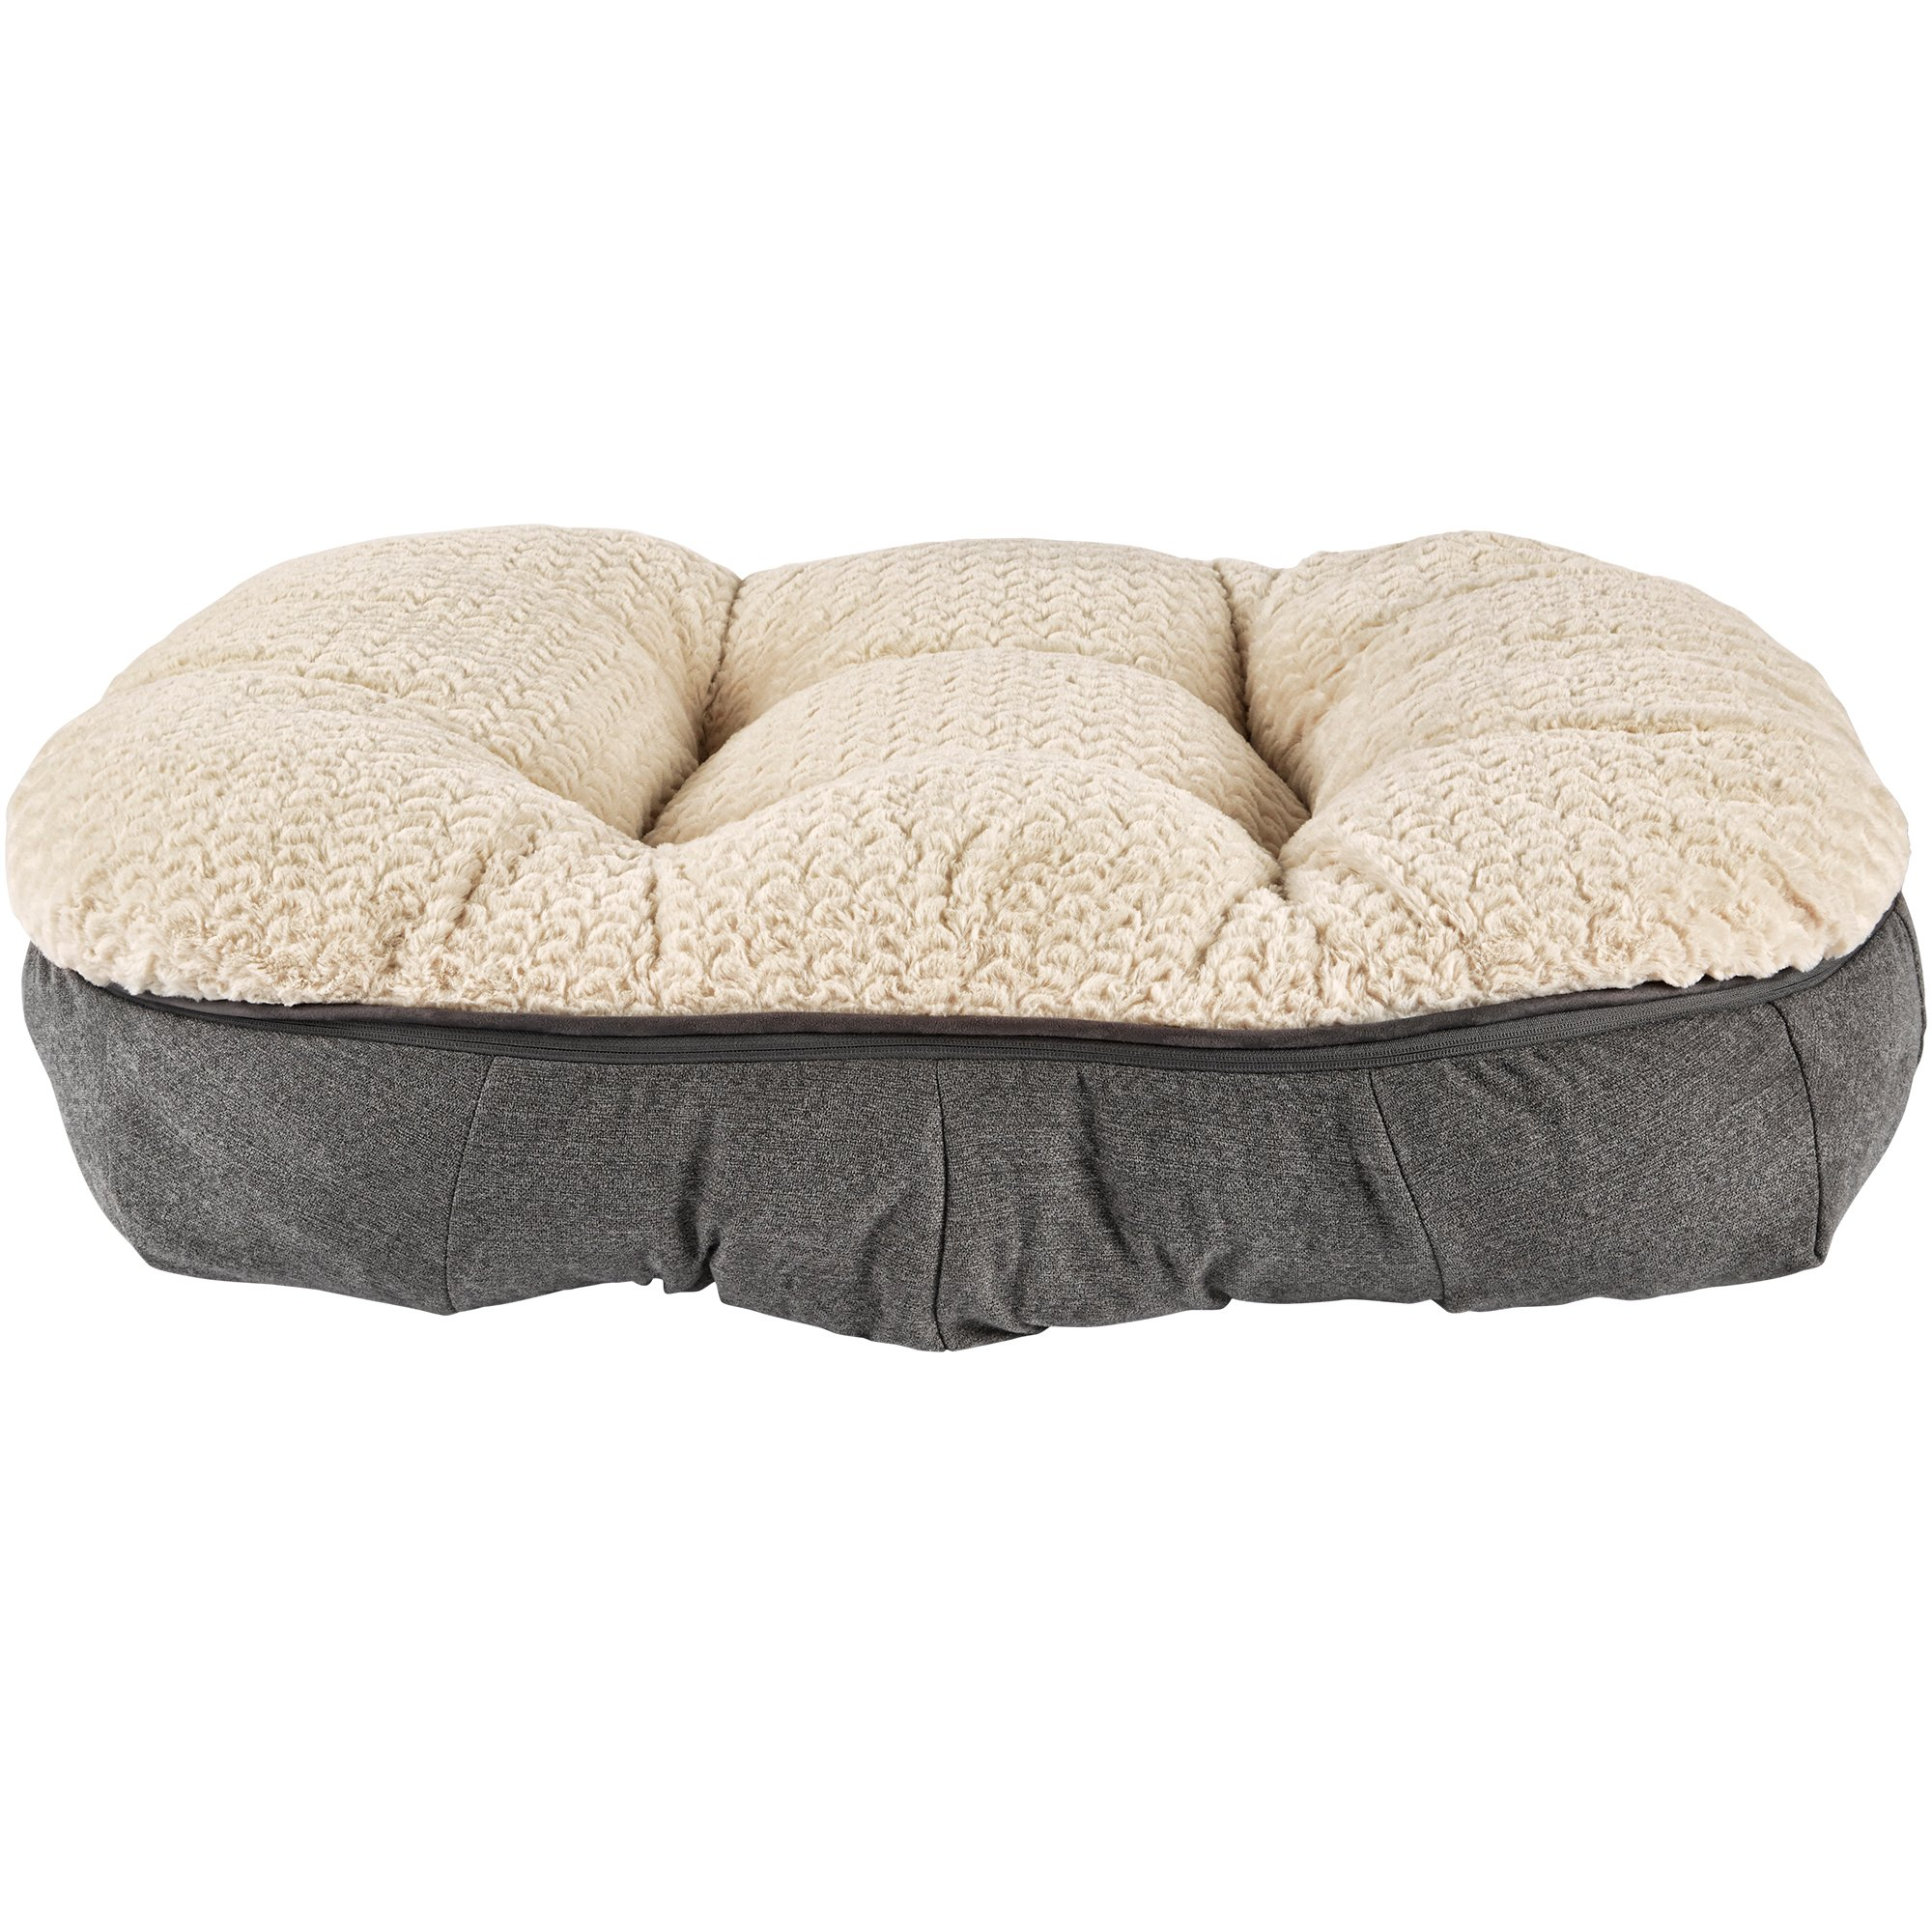 dog beds & bedding: best large & small dog beds on sale | petco